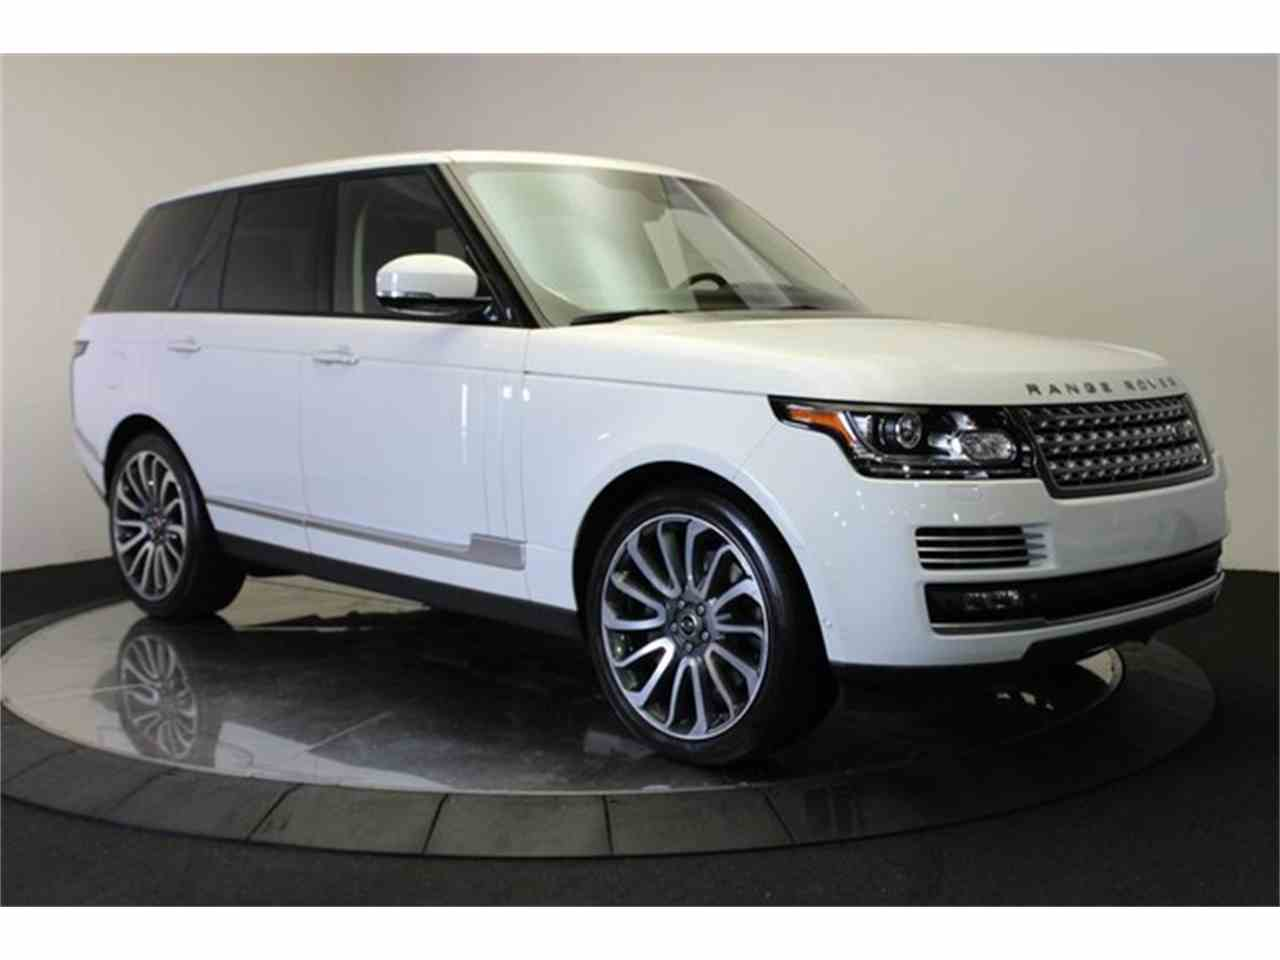 Large Picture of 2013 Land Rover Range Rover located in Anaheim California Offered by DC Motors - KHXU